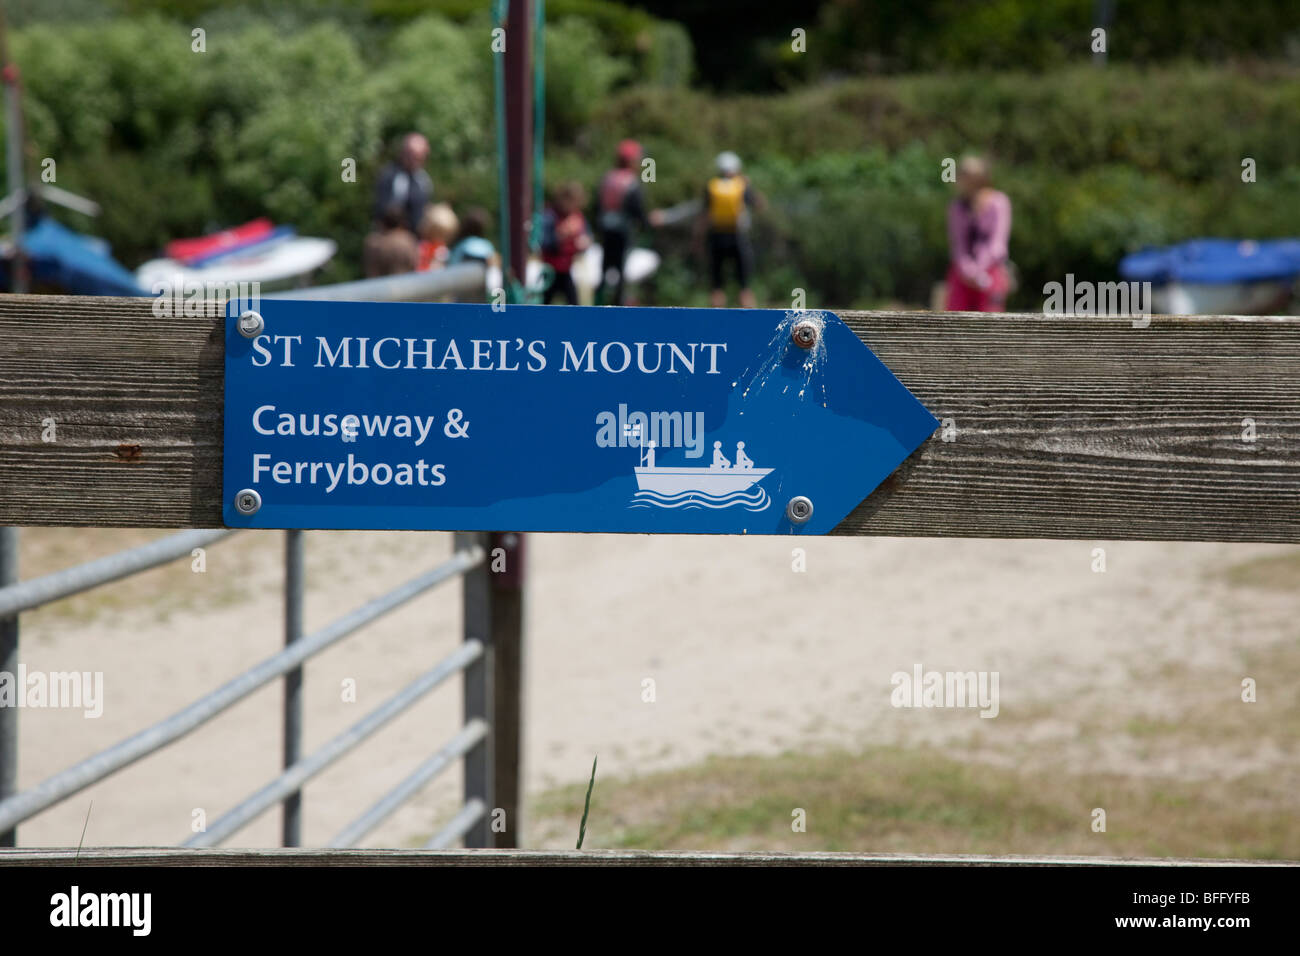 St Michael's Mount causeway and Ferryboats sign, Cornwall. - Stock Image